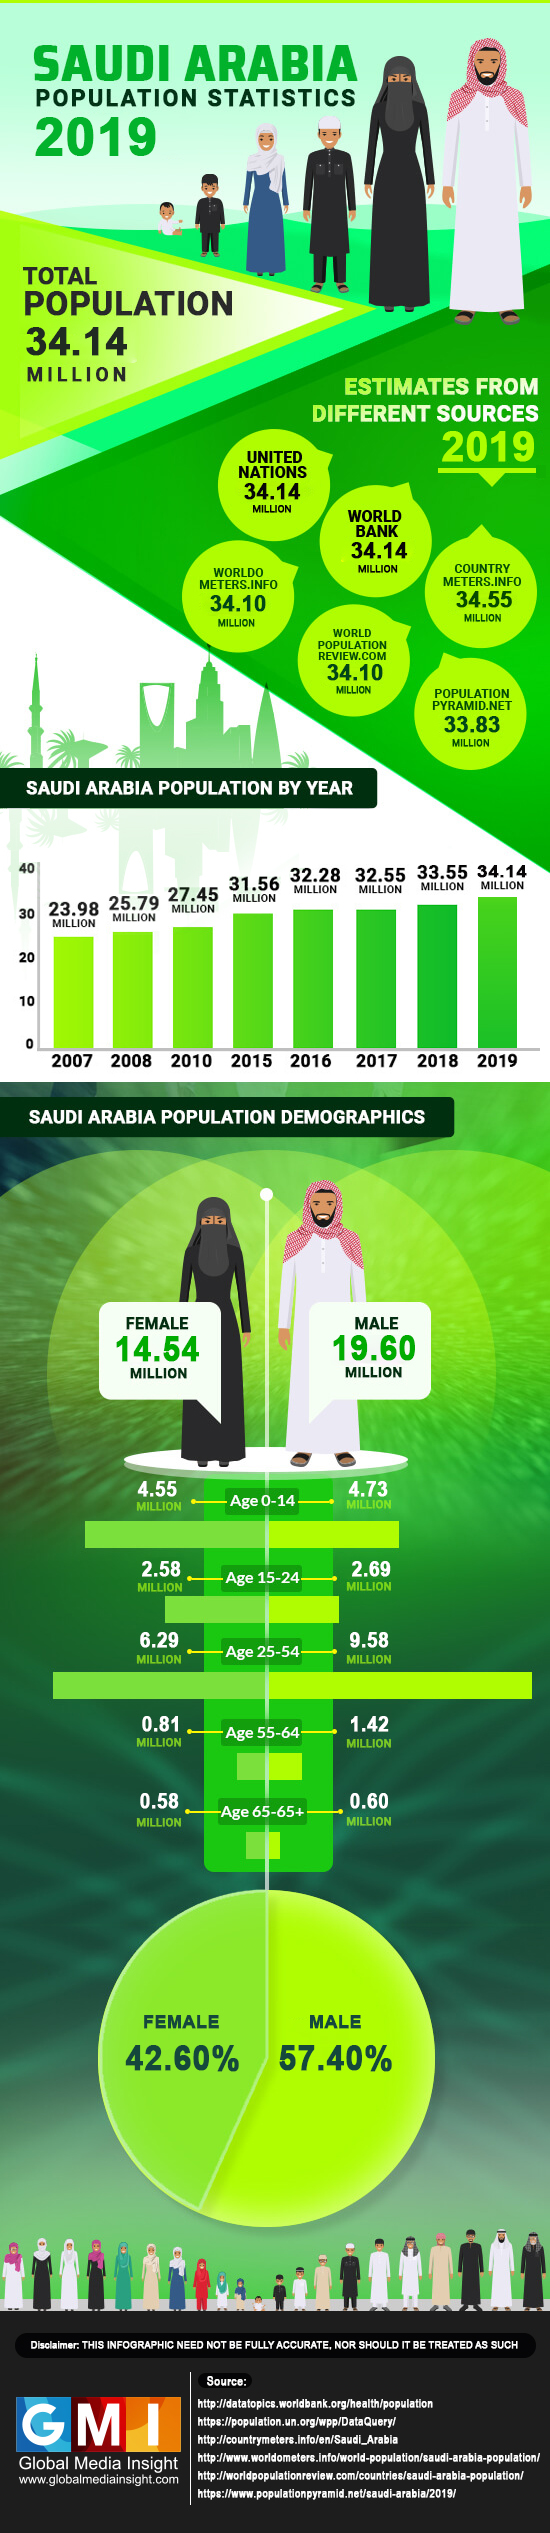 population of saudi arabia